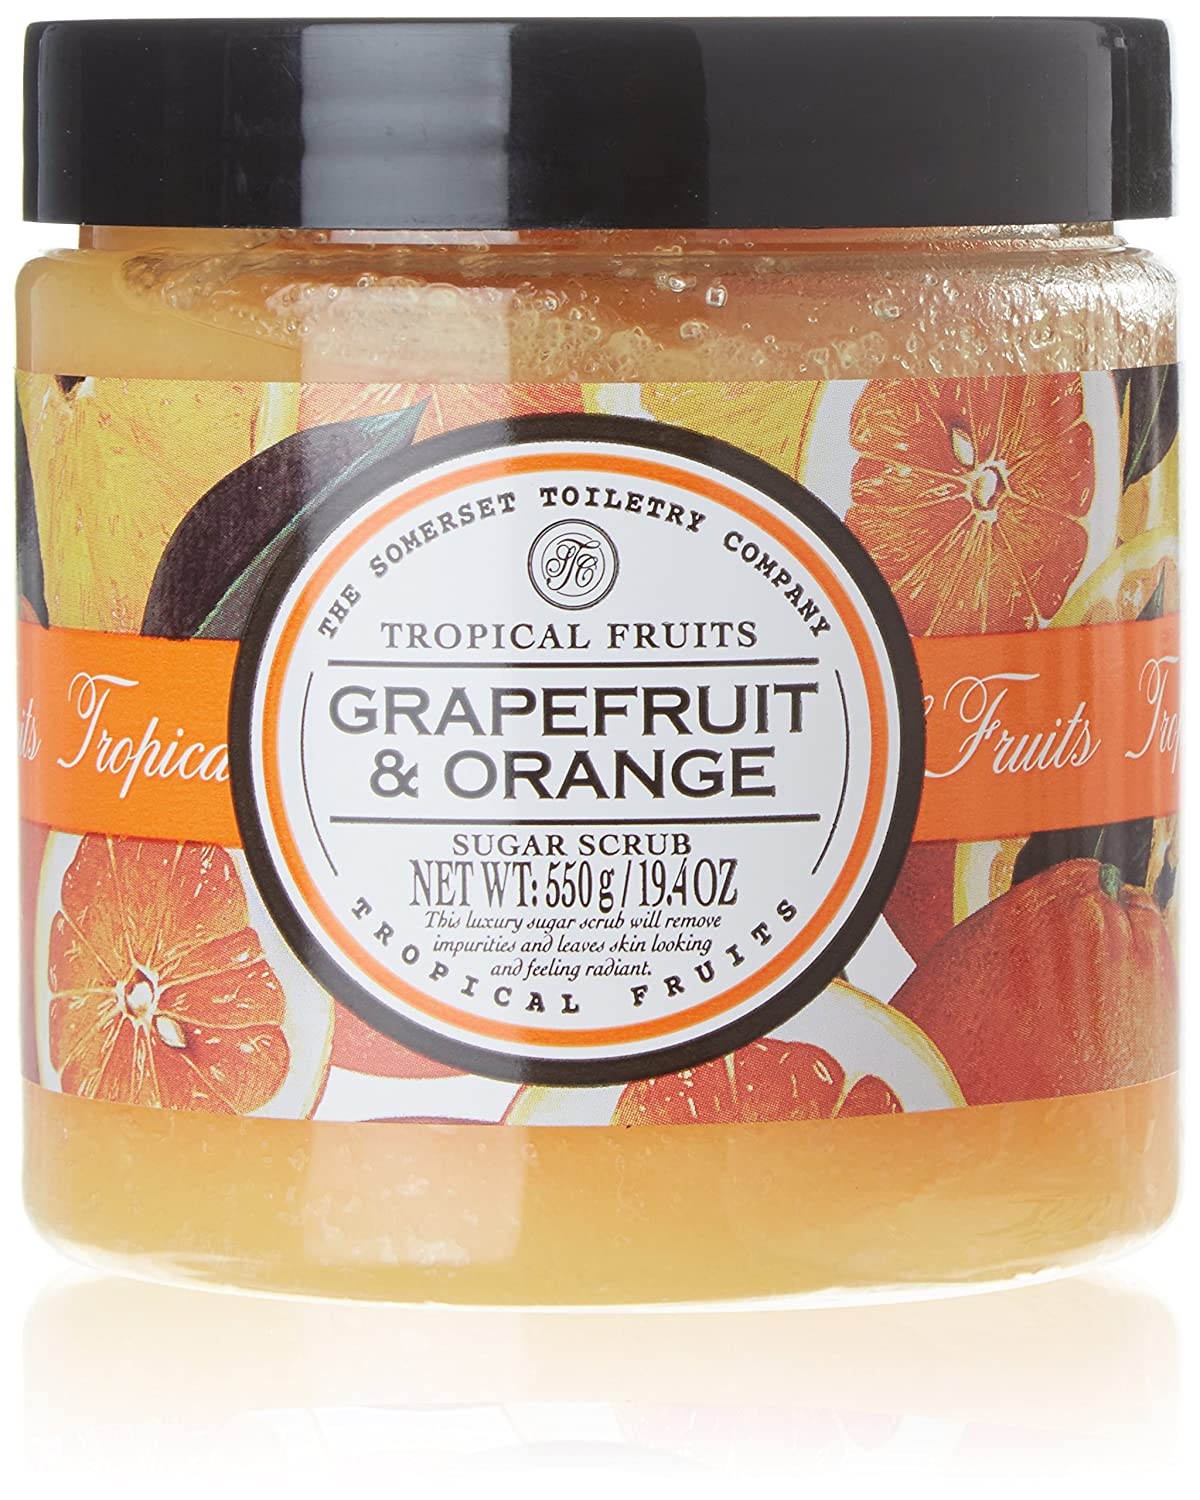 Tropical Fruits Grapefruit and Orange Sugar Scrub 550 g The Somerset Toiletry Company 92331